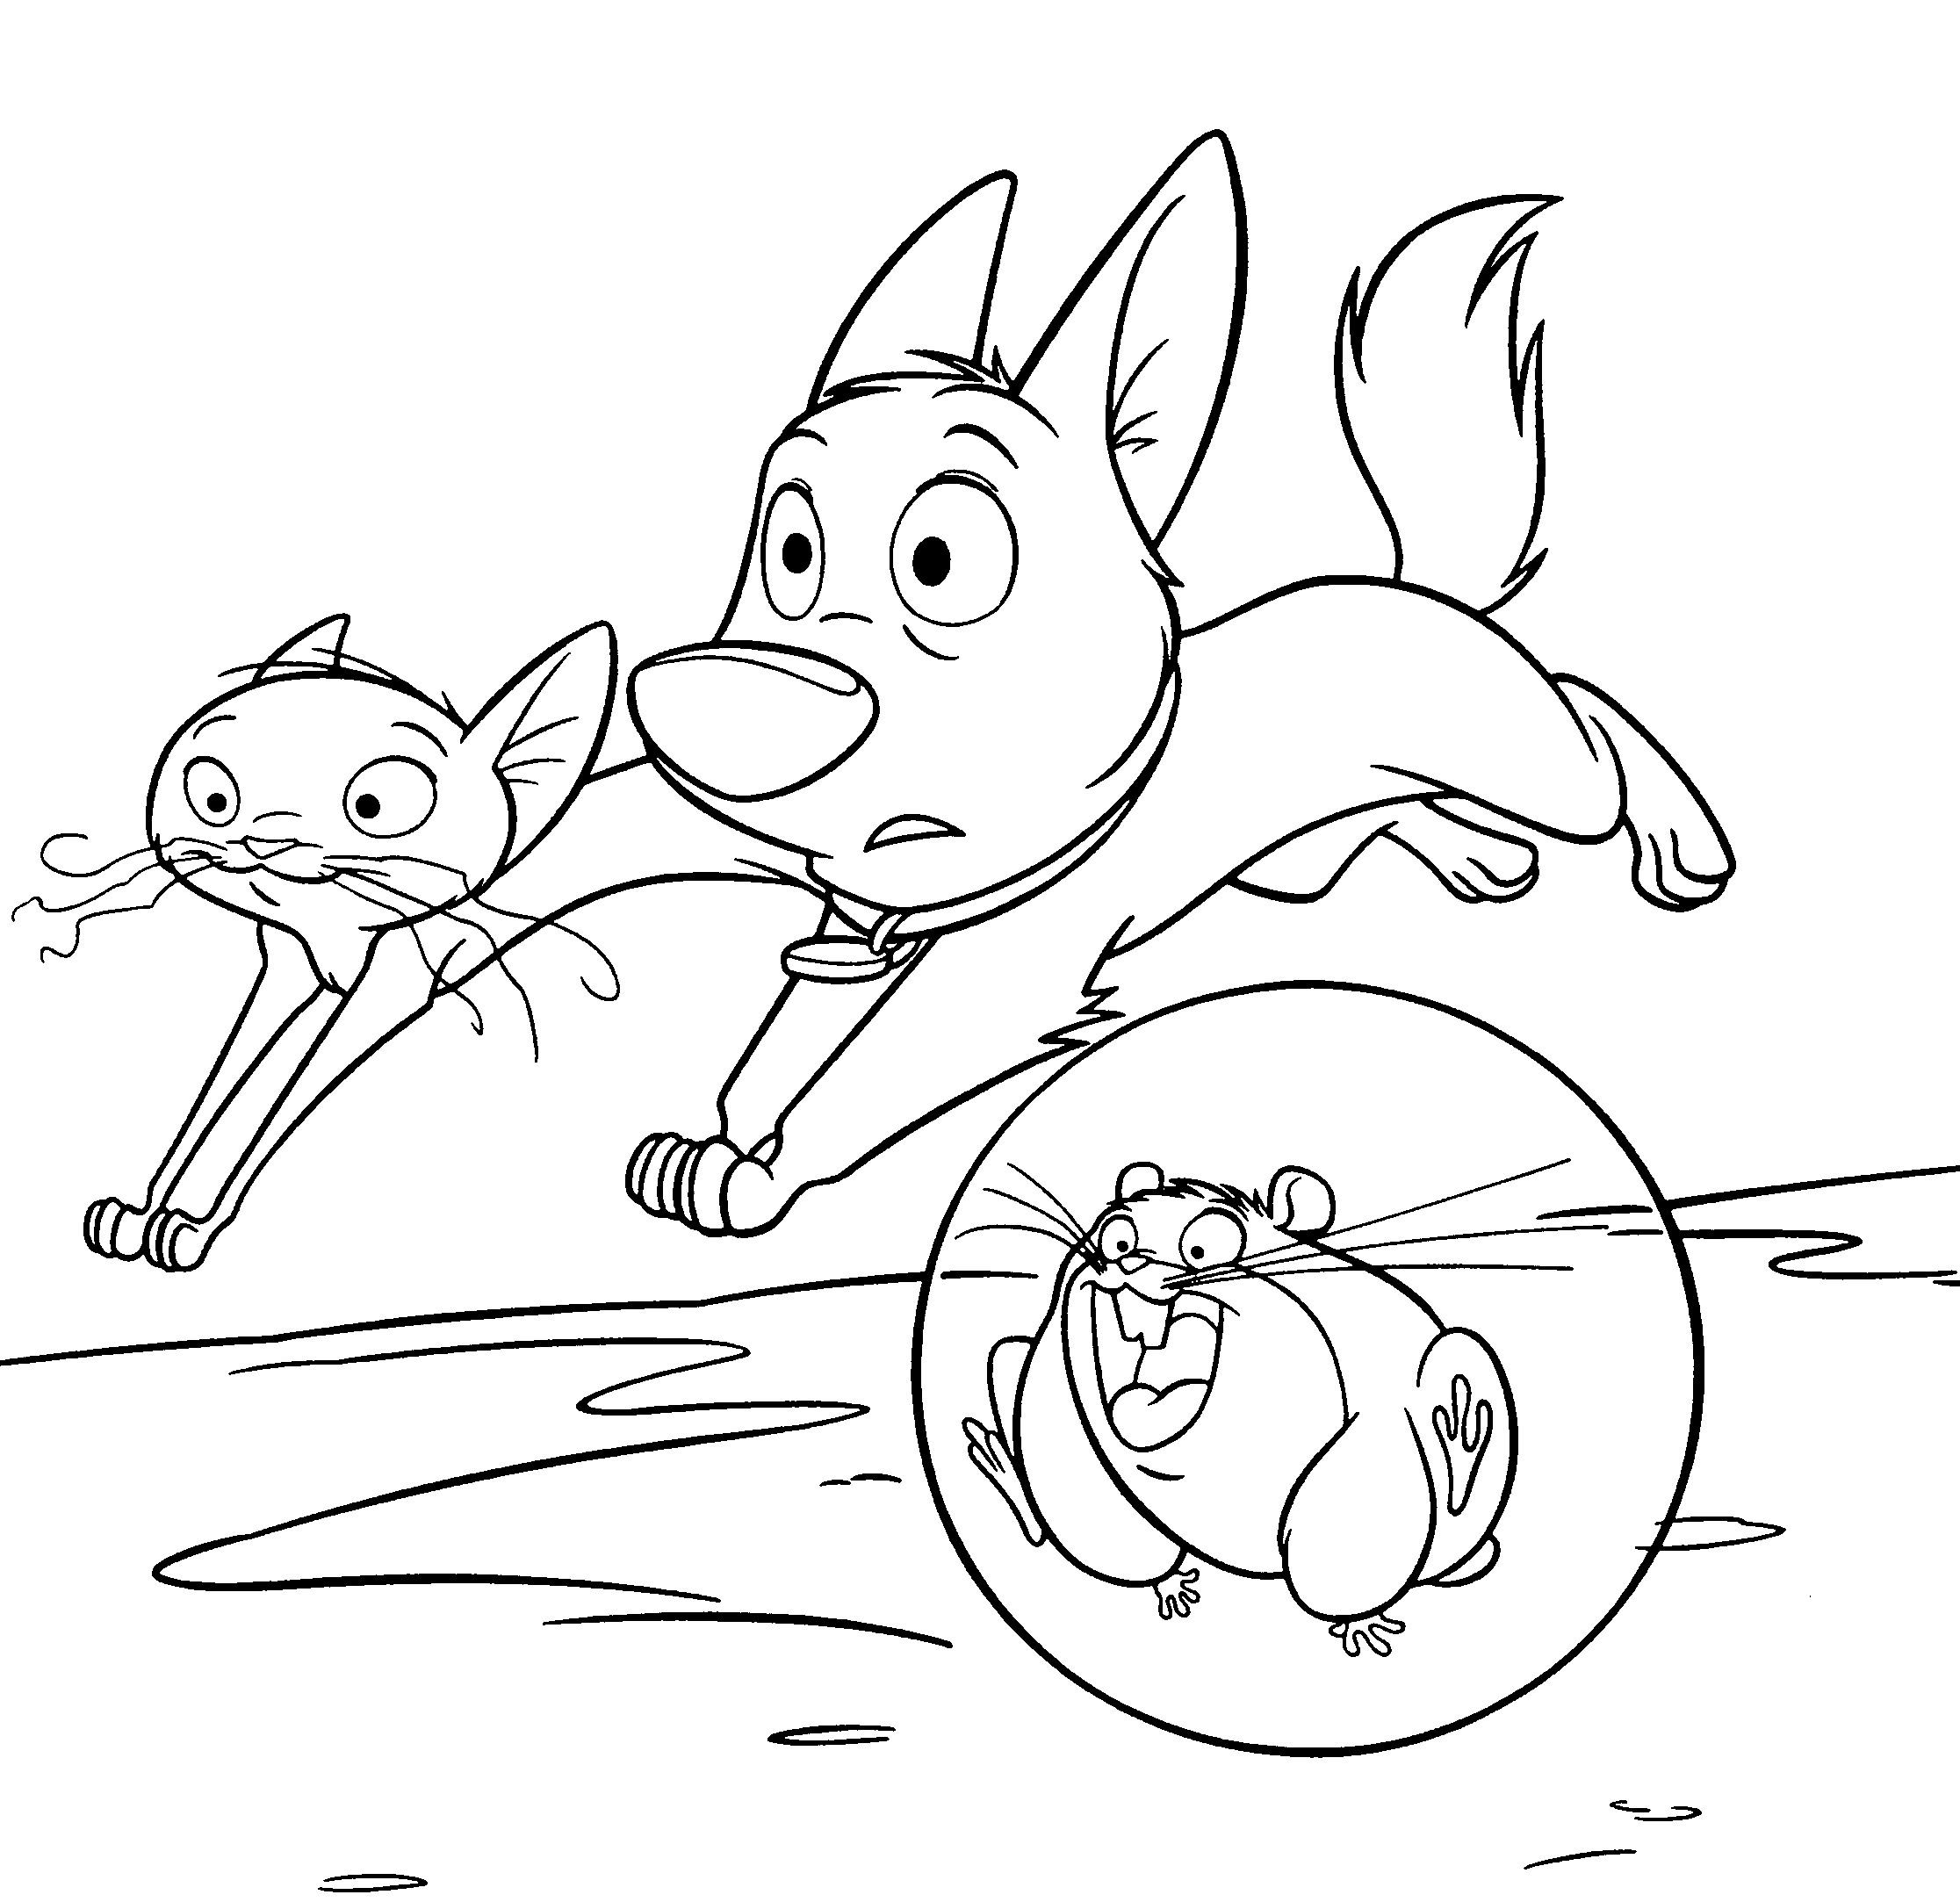 Bolt Coloring Page | Cartoon coloring pages, Disney coloring pages ... | 2166x2232